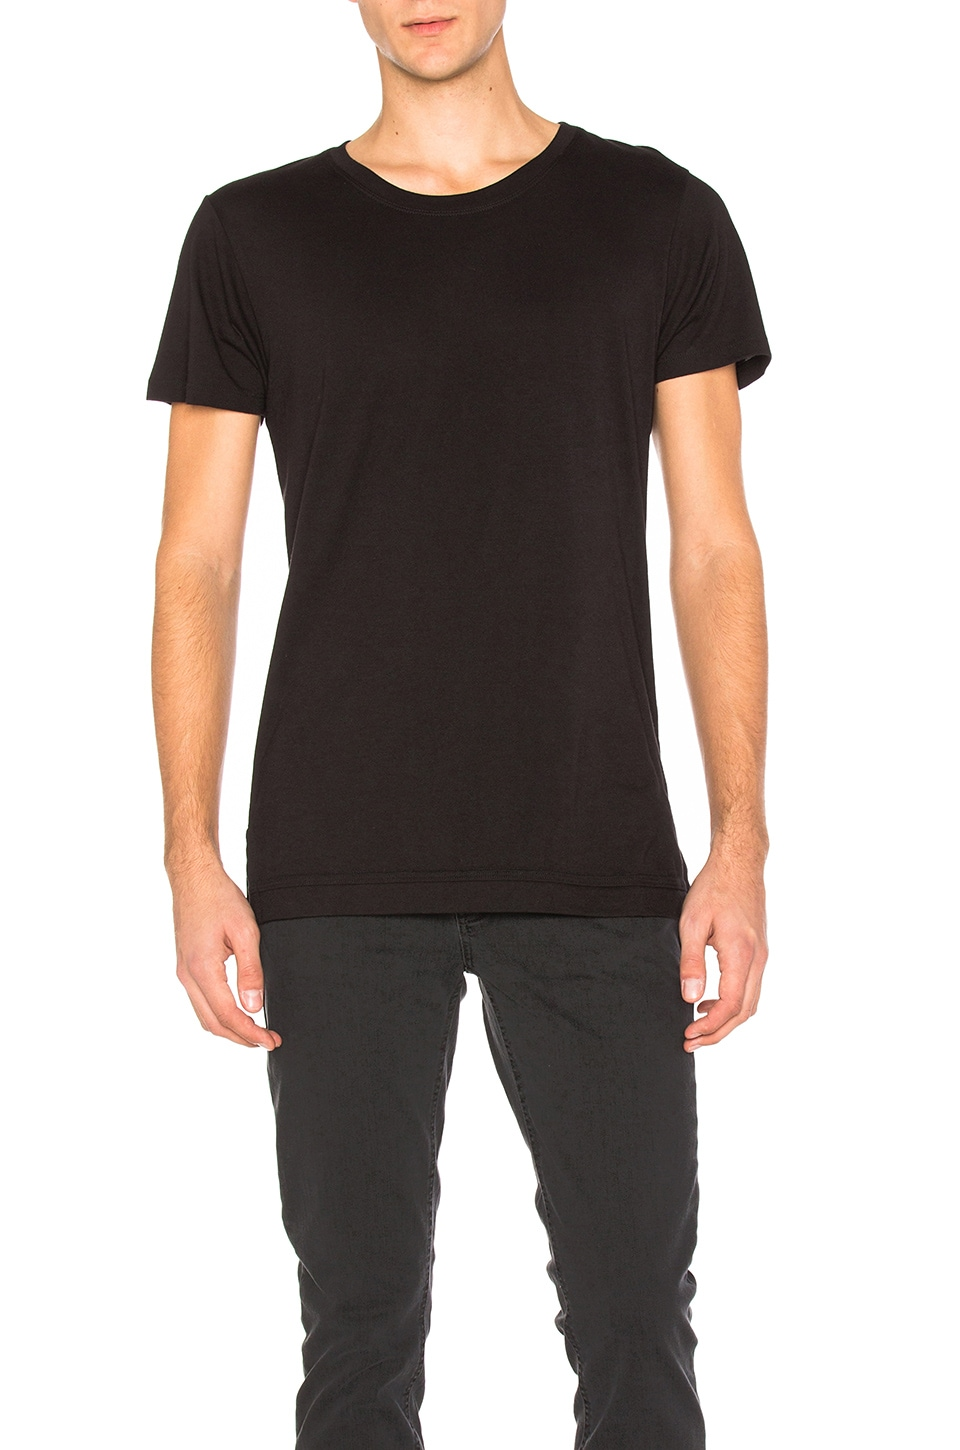 JOHN ELLIOTT Mercer Tee in Black